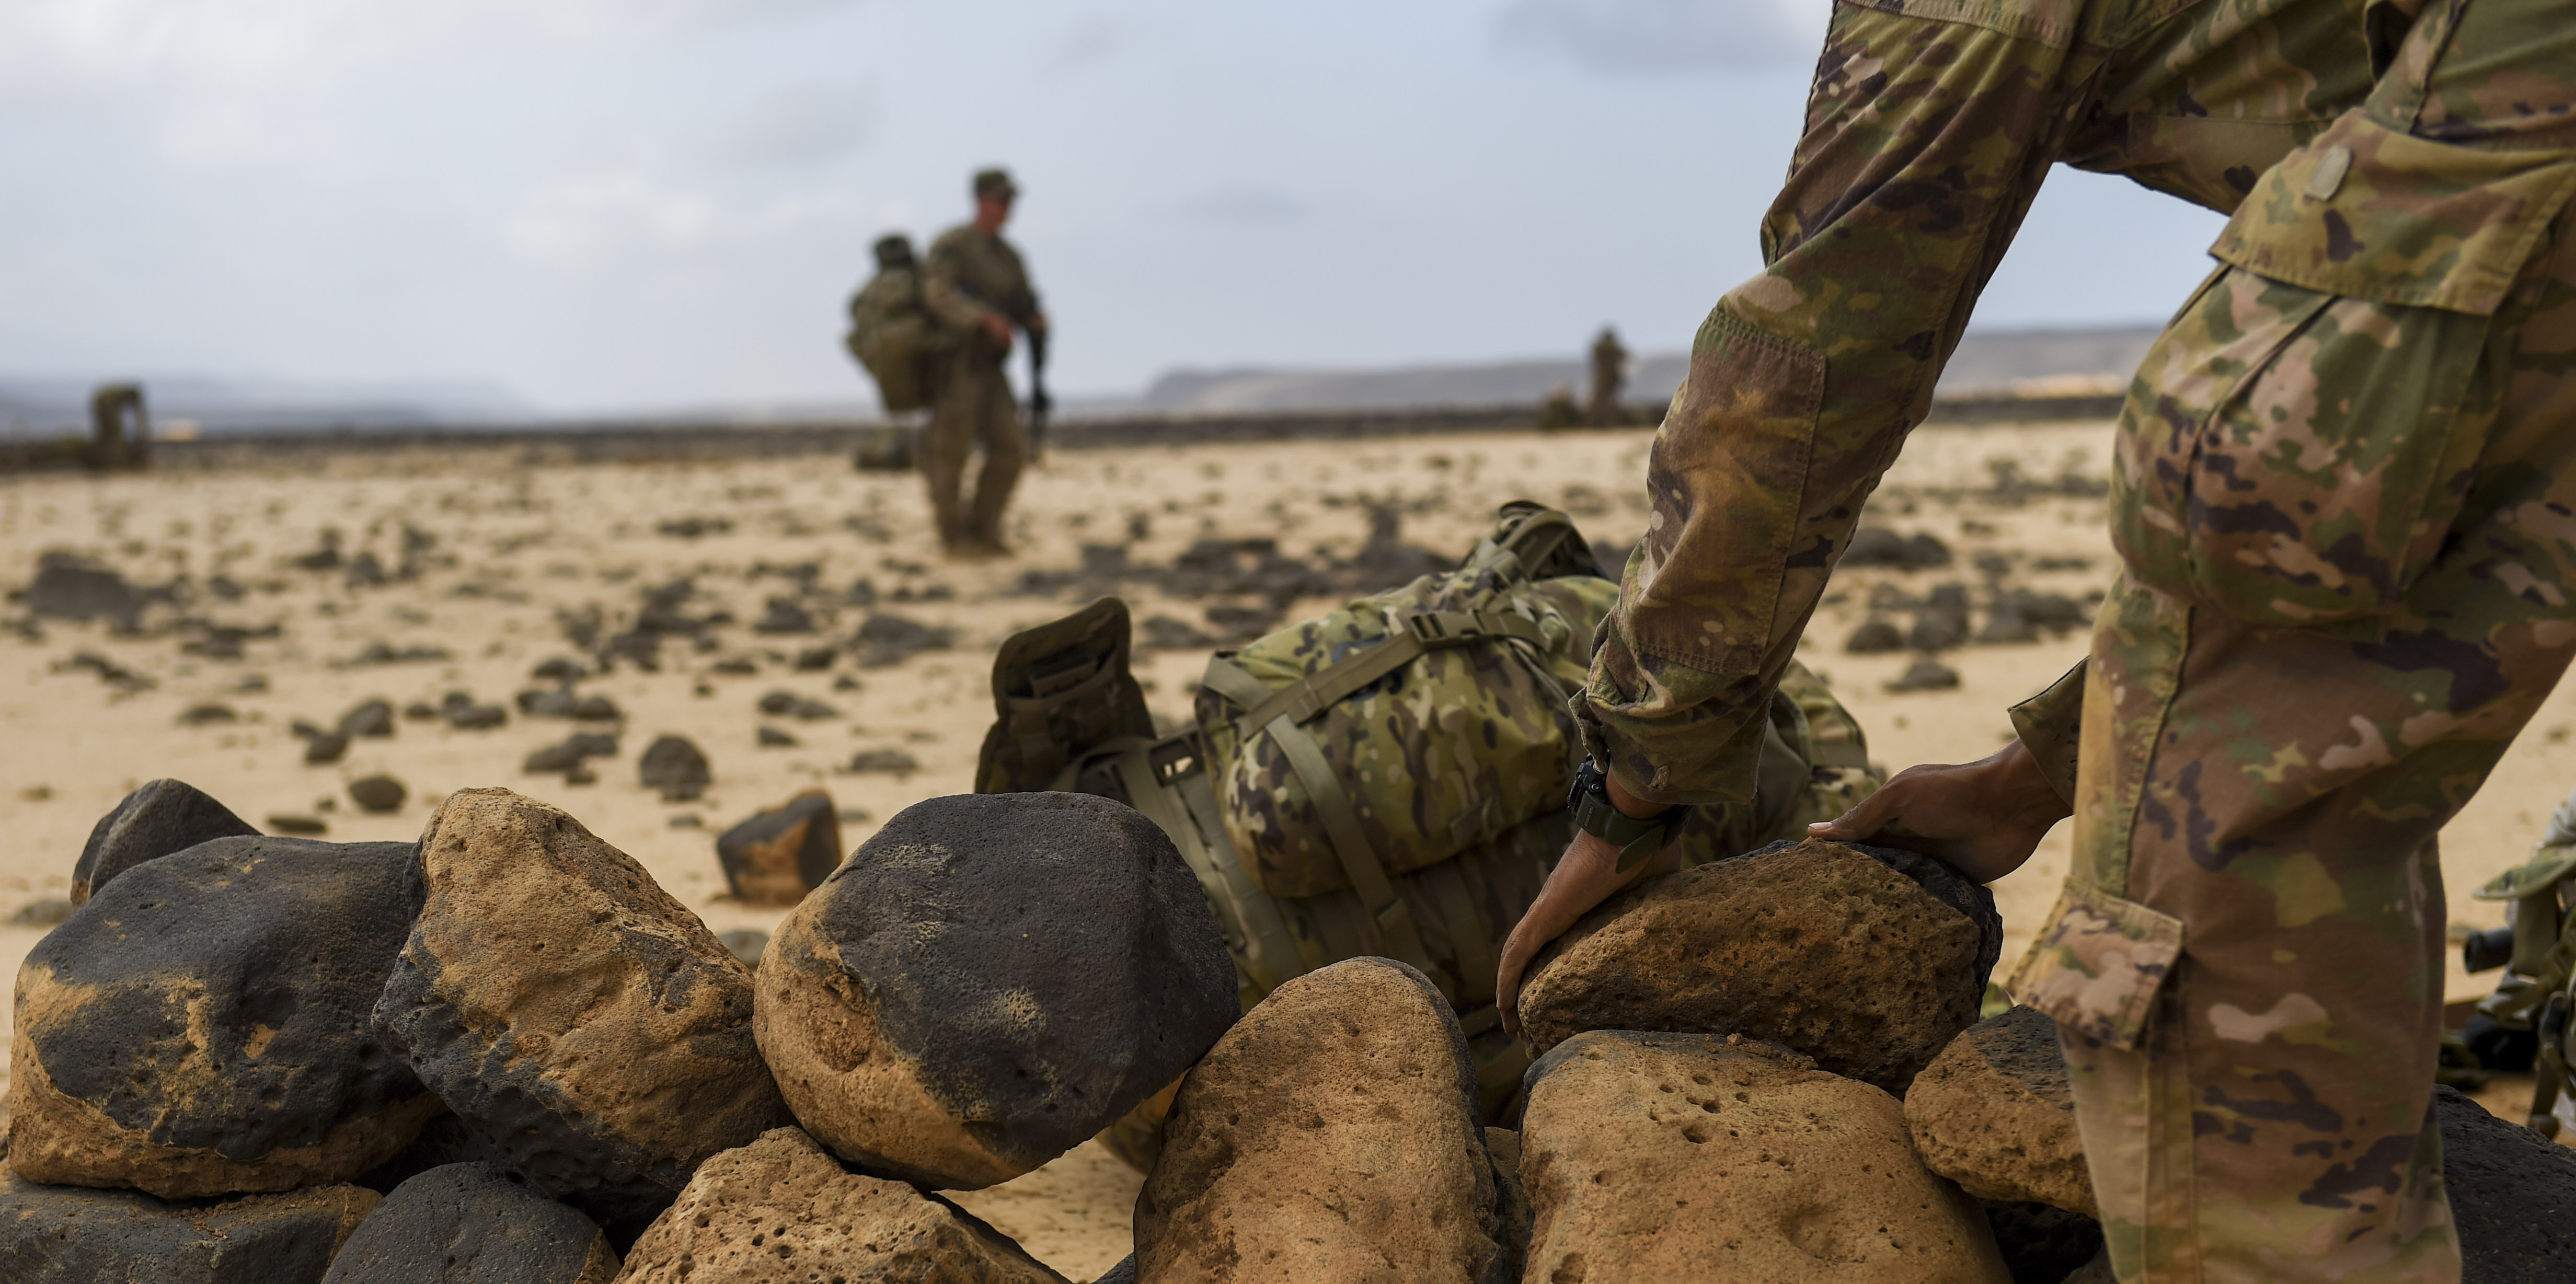 U.S. Army National Guard Spc. Keifer Davis, 3rd Battalion, 144th Infantry Regiment, Task Force Bayonet, stacks rocks as he sets up a defensive position on the first day of a French Desert Commando Course at the Djibouti Range Complex near Arta, Djibouti, Nov. 26, 2017. The 12-day course will expose service members to the fundamentals of desert combat, survival, and troop movements while also bridging language and cultural barriers between the French and American troops. (U.S. Air Force photo by Staff Sgt. Timothy Moore)